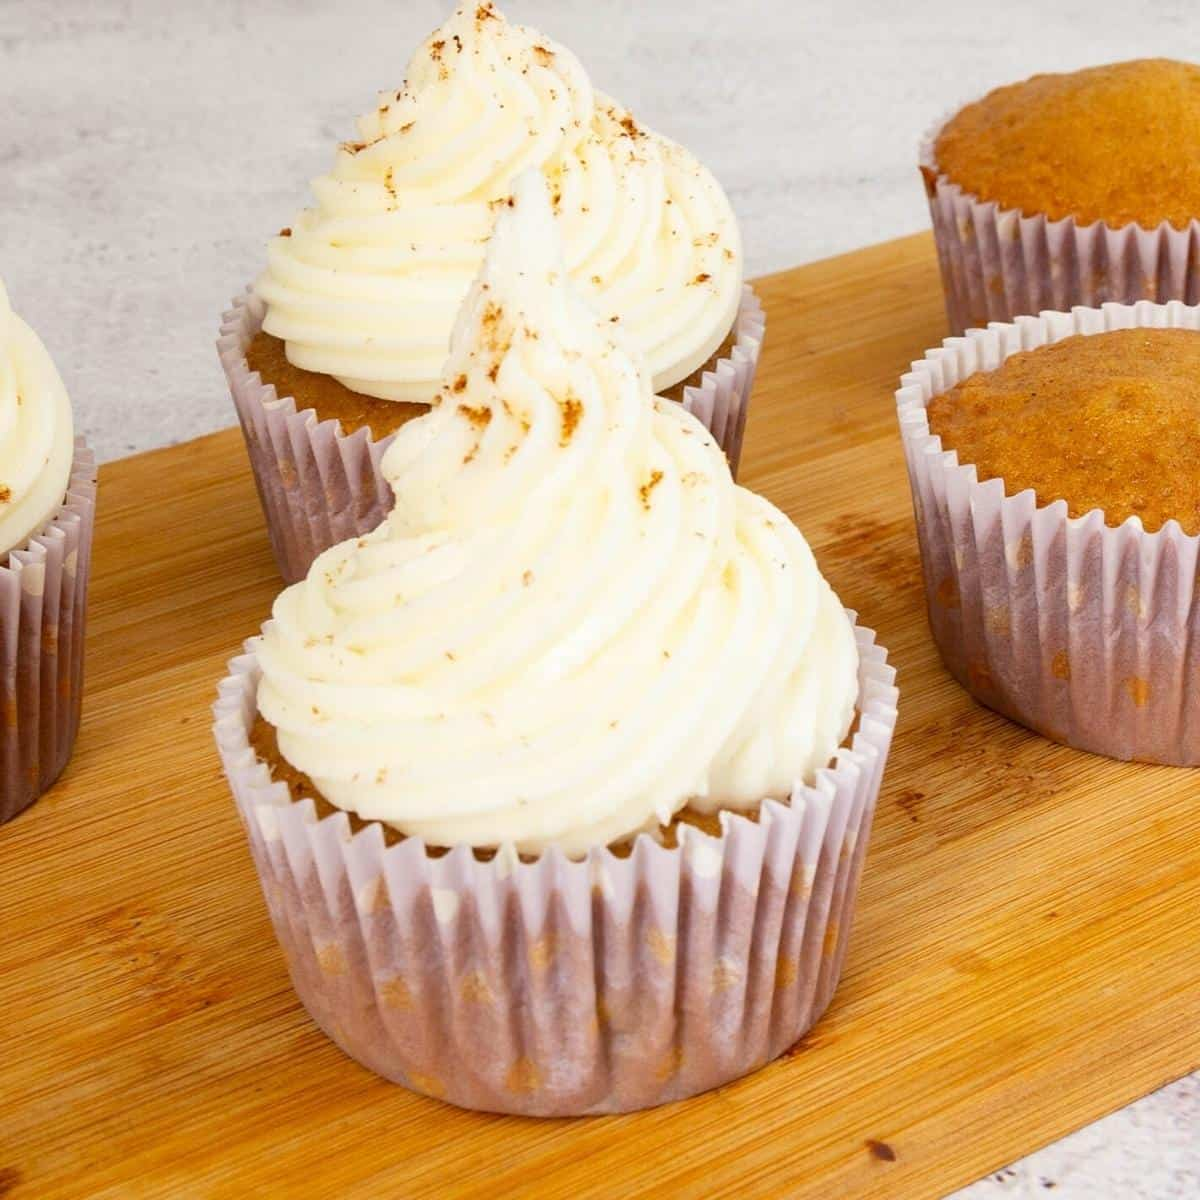 Frosted cupcakes dusted with nutmeg.